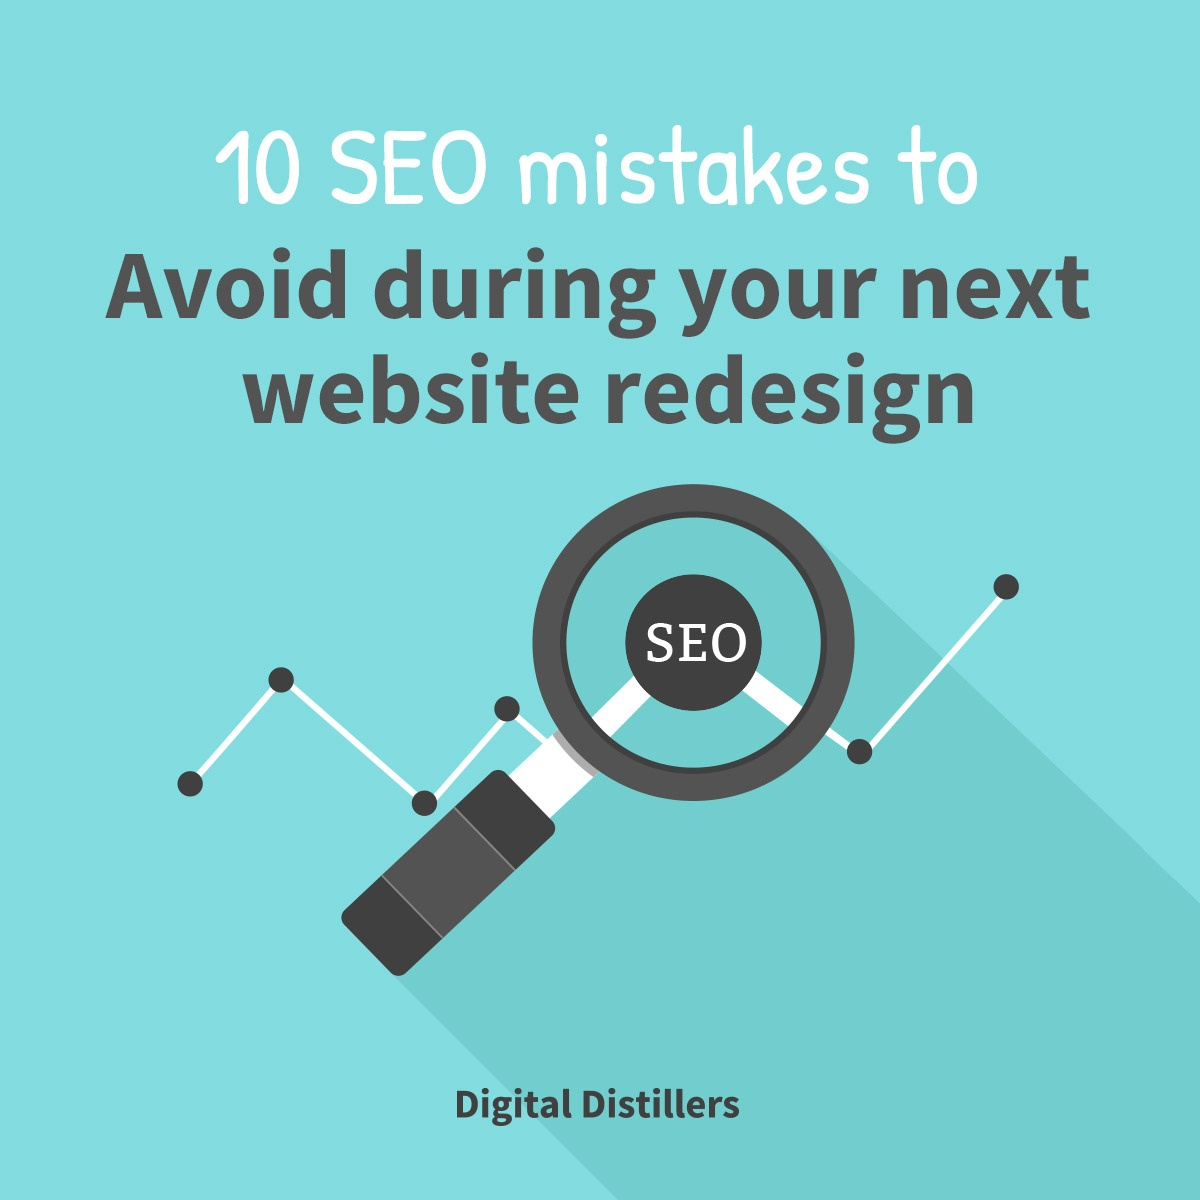 SEO Mistakes to Avoid During Your Next Website Redesign